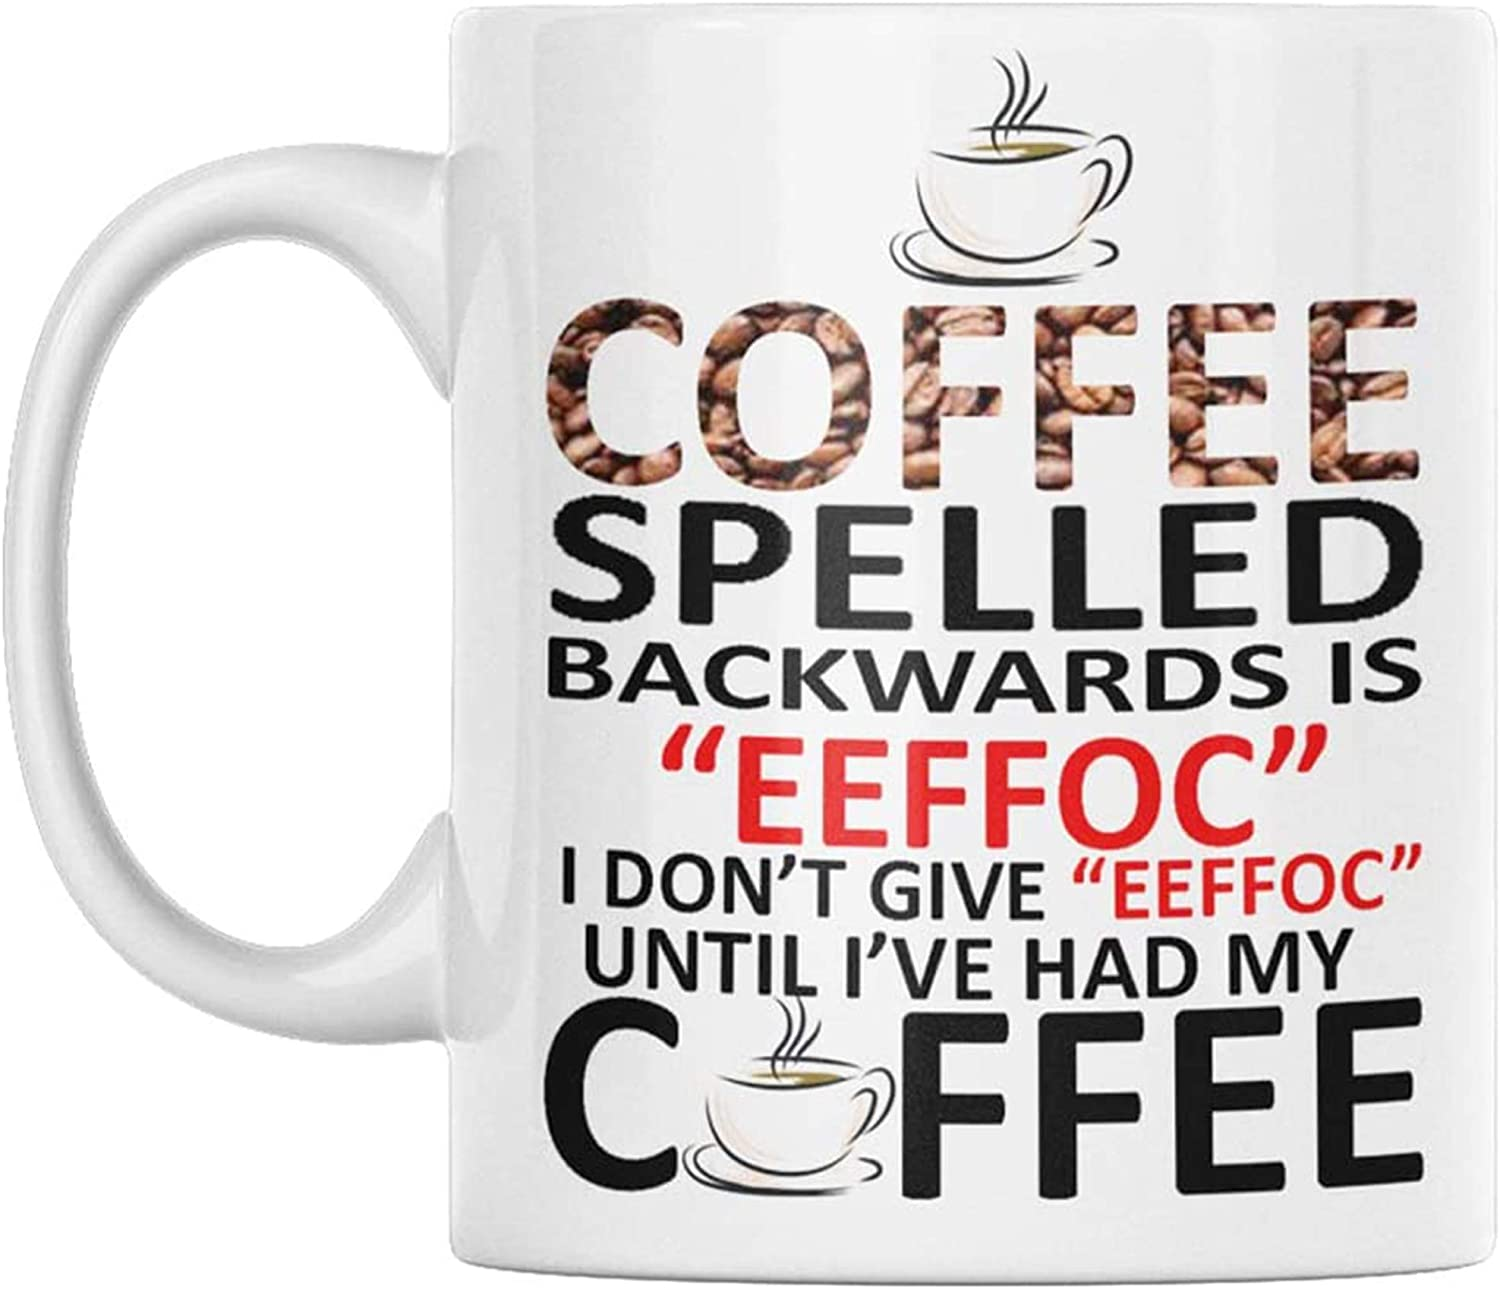 Coffee Spelled Backwards Is Eeffoc - I Don't Give A Eeffoc Until I've Had My Coffee - Coffee Decor - Coffee Cup - Ceramic Mug - Microwave and Dishwasher Safe - Holds up to 11oz - By GTR SOURCE corp.